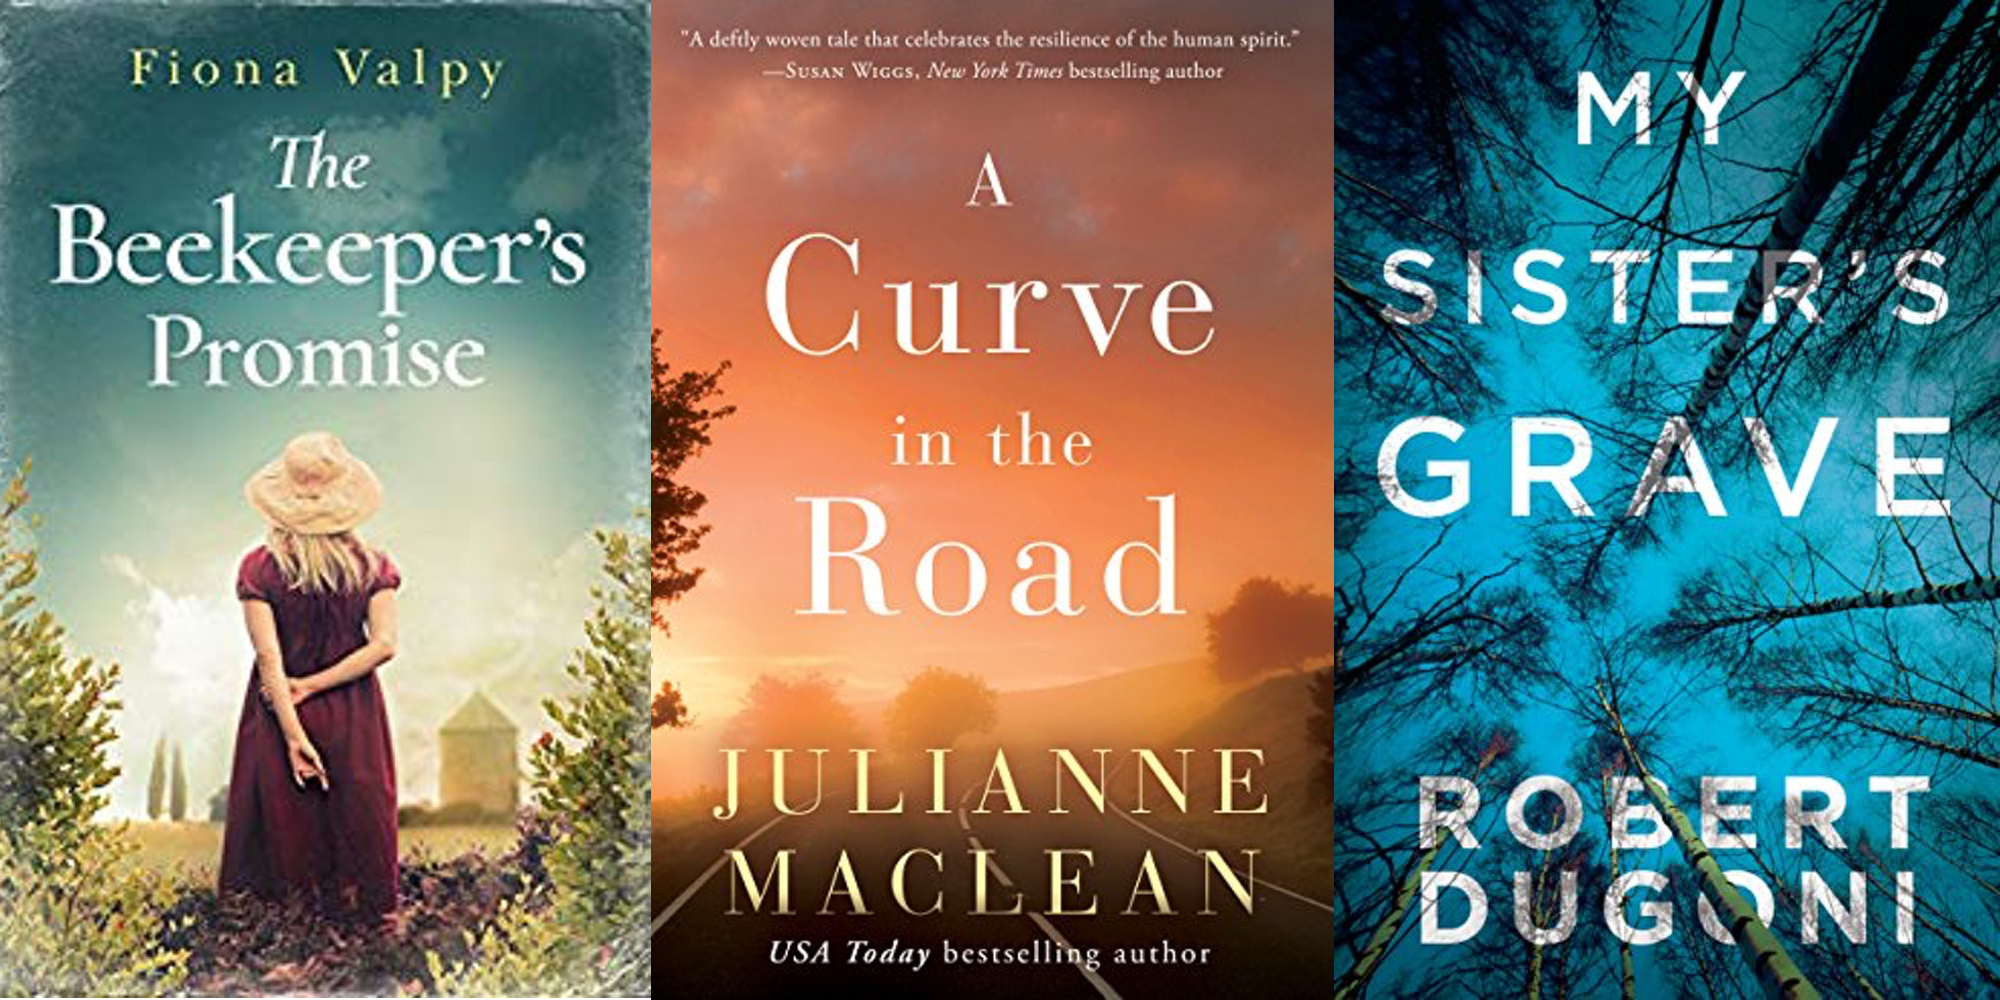 Expand your digital library with top Kindle eBook reads from $2 at Amazon